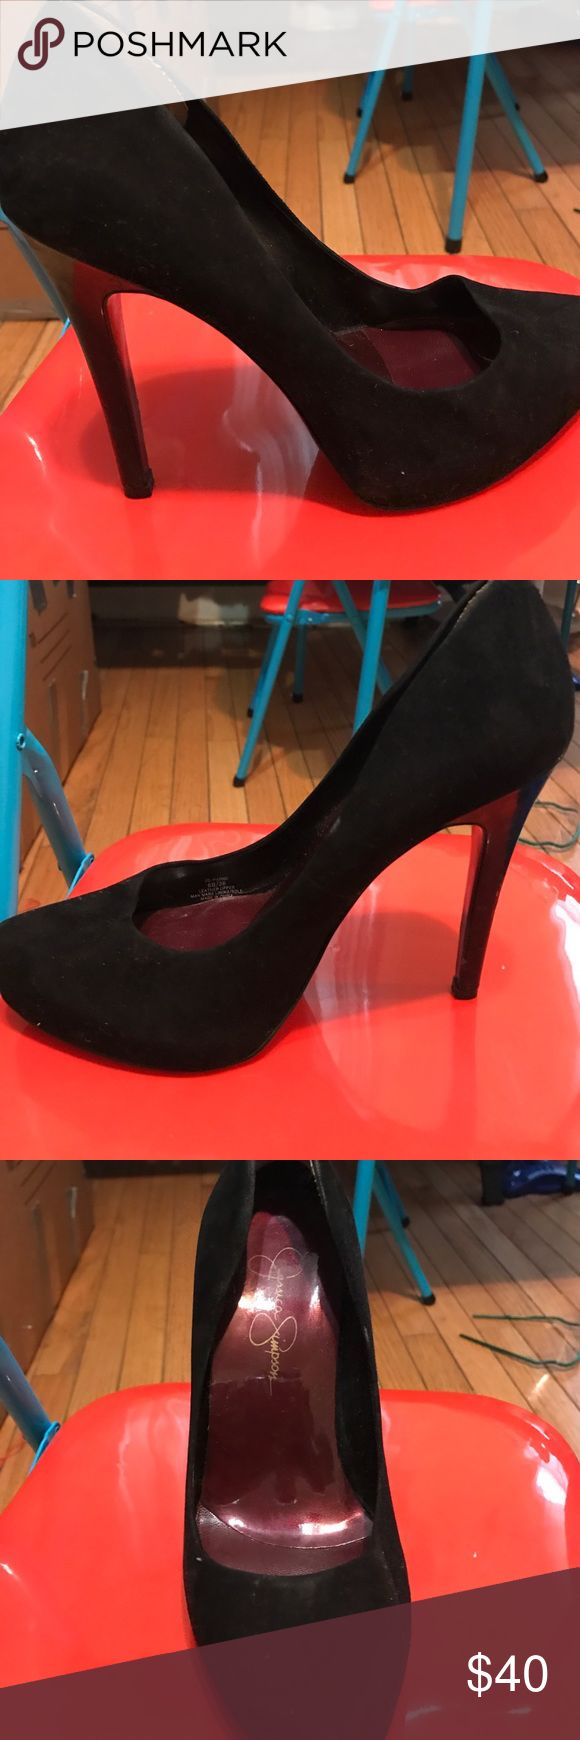 Jessica Simpson Black Pumps Slightly worn. Worn 2x with a platform (1 inch) infront for comfort. 4.5 Inch heel. Doesn't come with box. Jessica Simpson Shoes Heels